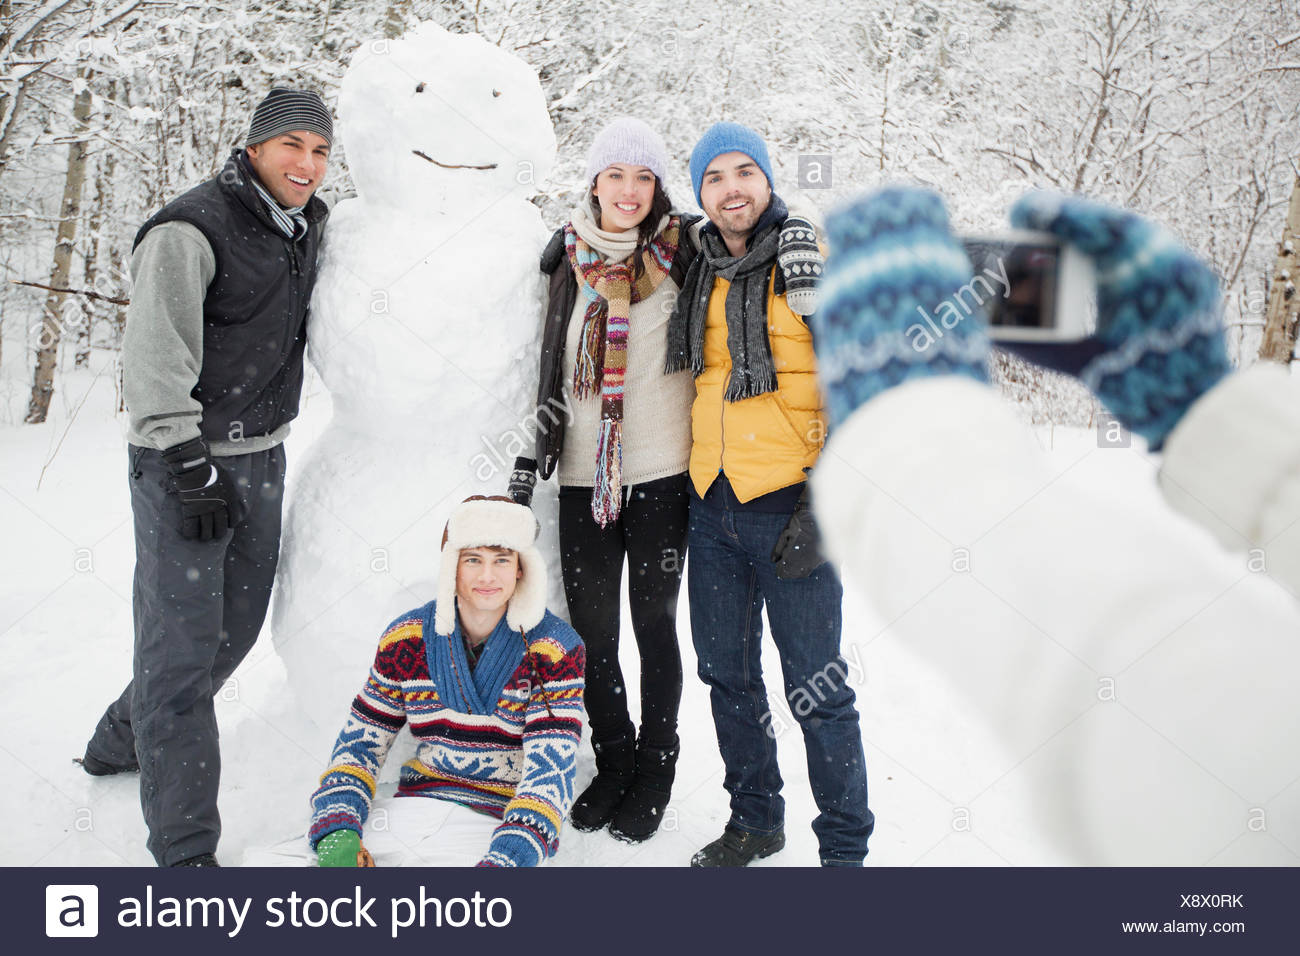 picture taking with snowman - Stock Image